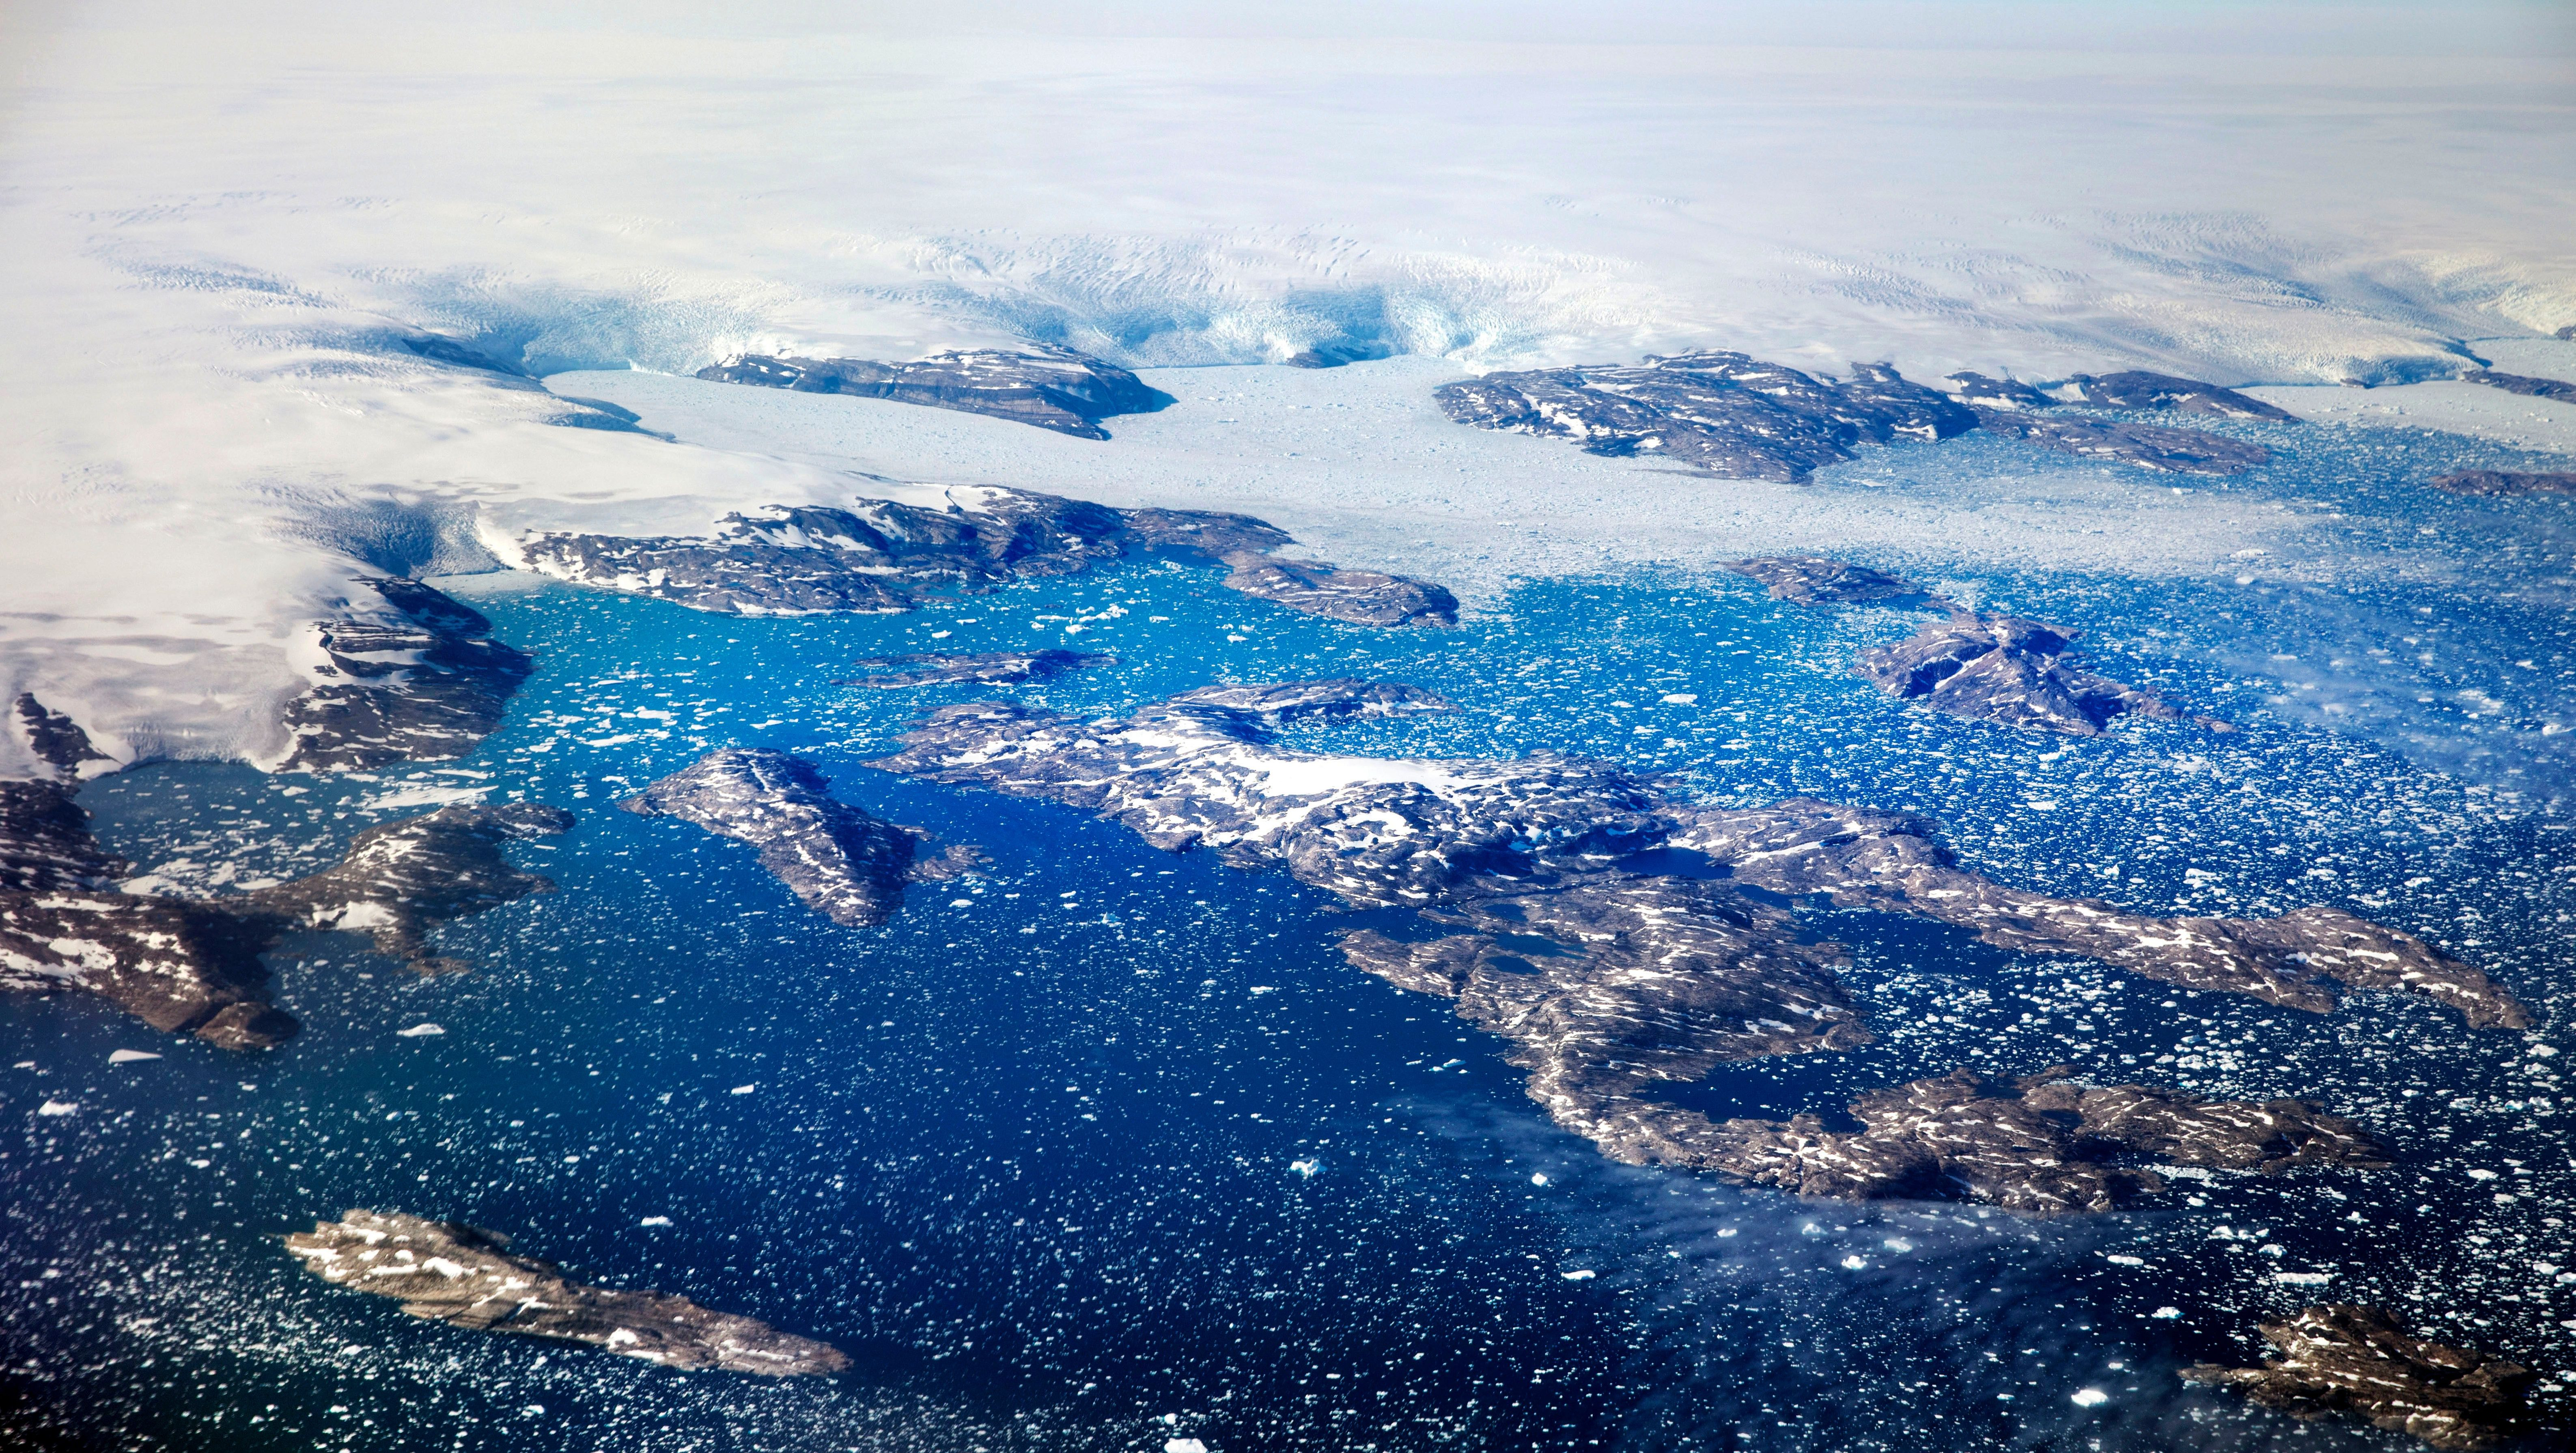 Icebergs calving off the Greenland ice sheet.